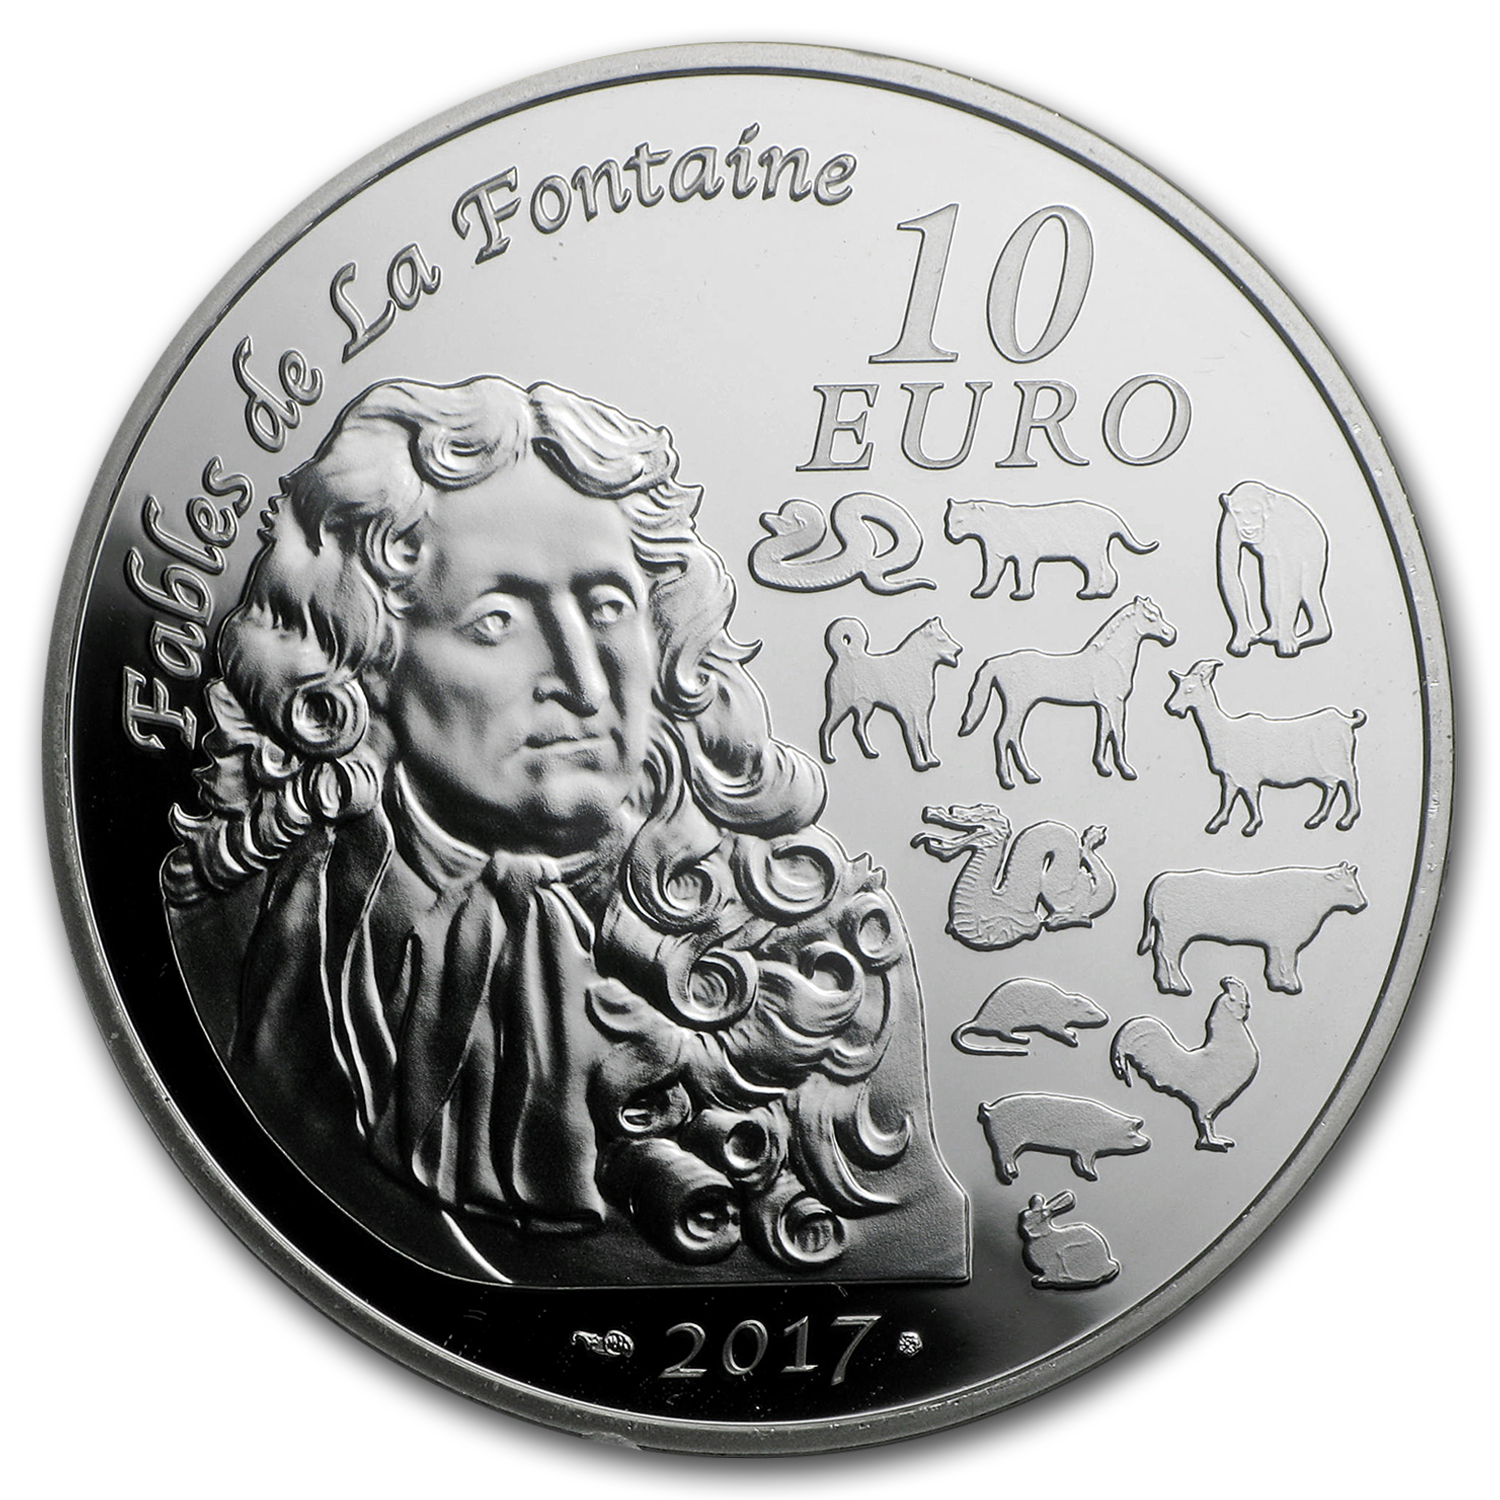 2017 France Silver €10 Year of the Rooster Proof (Lunar Series)